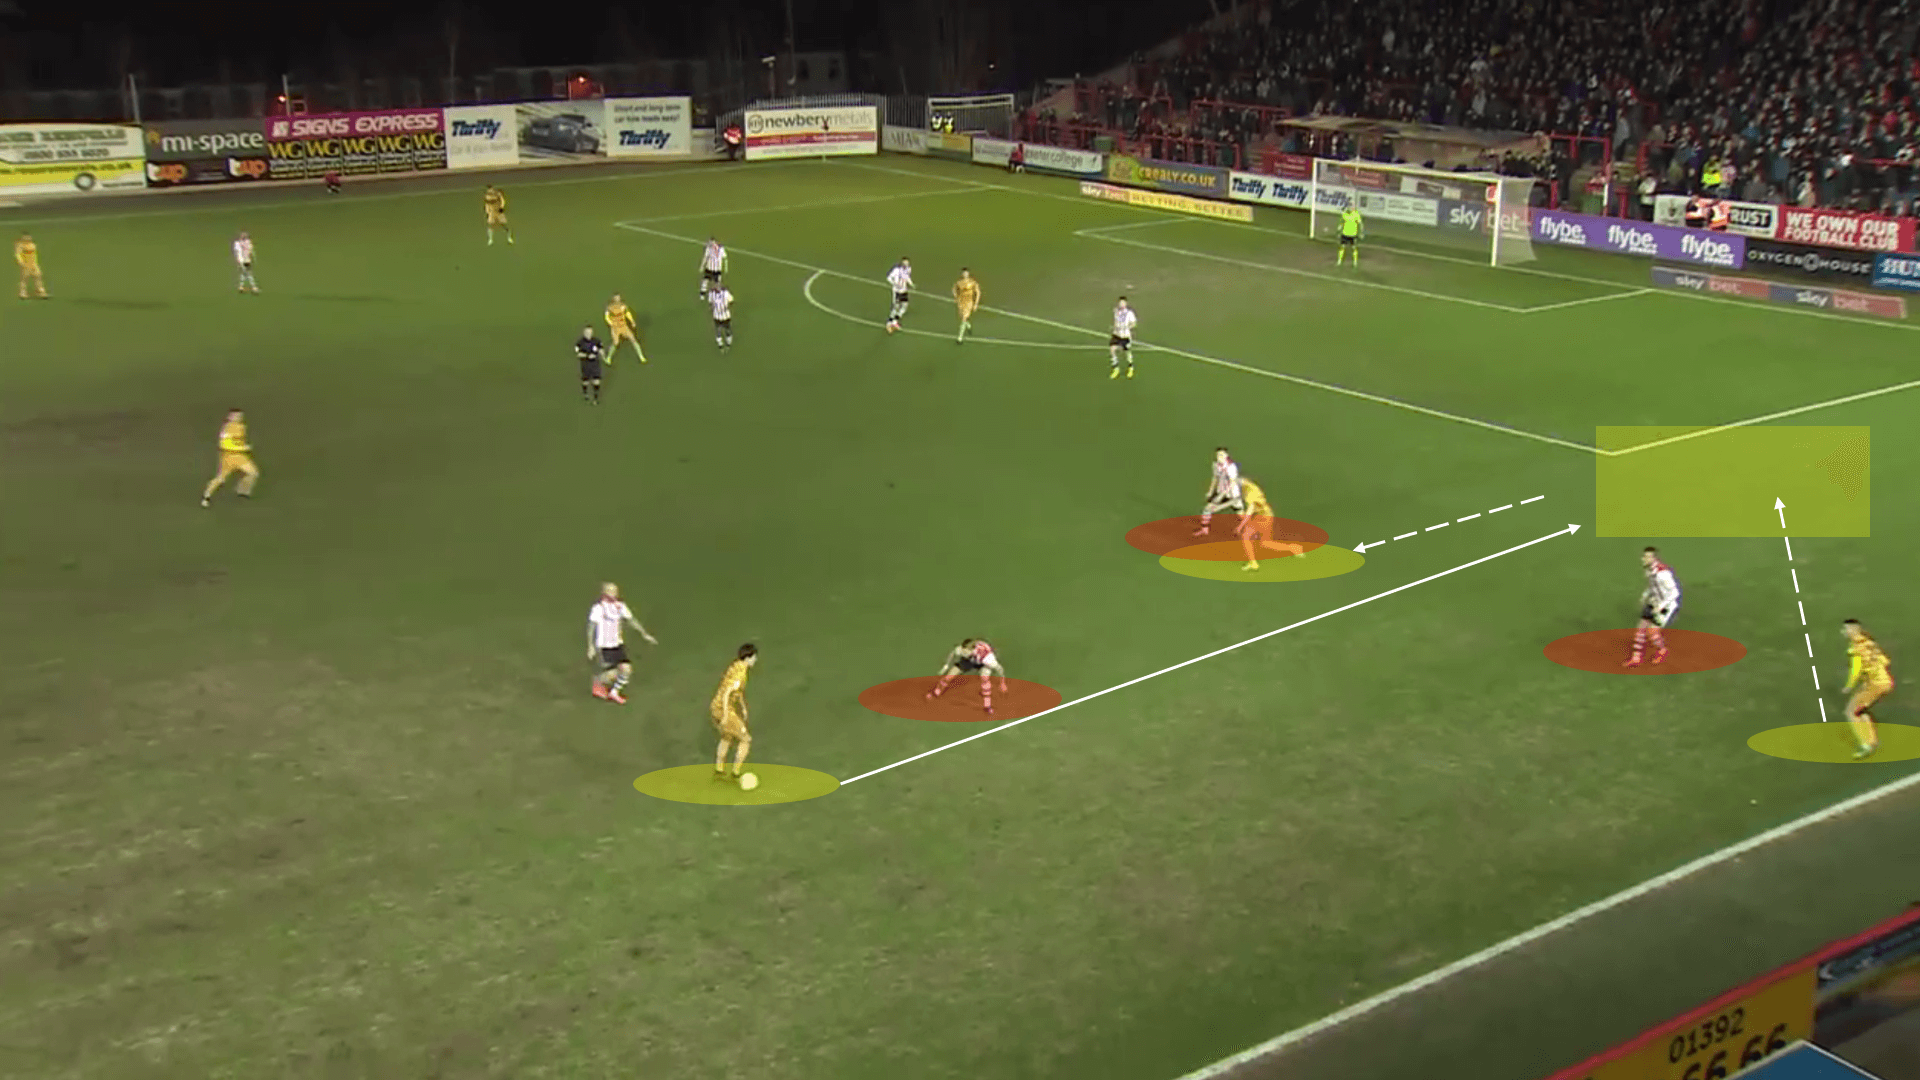 Sky Bet League Two 2019/20: Exeter City vs Crewe Alexandra - Tactical Analysis